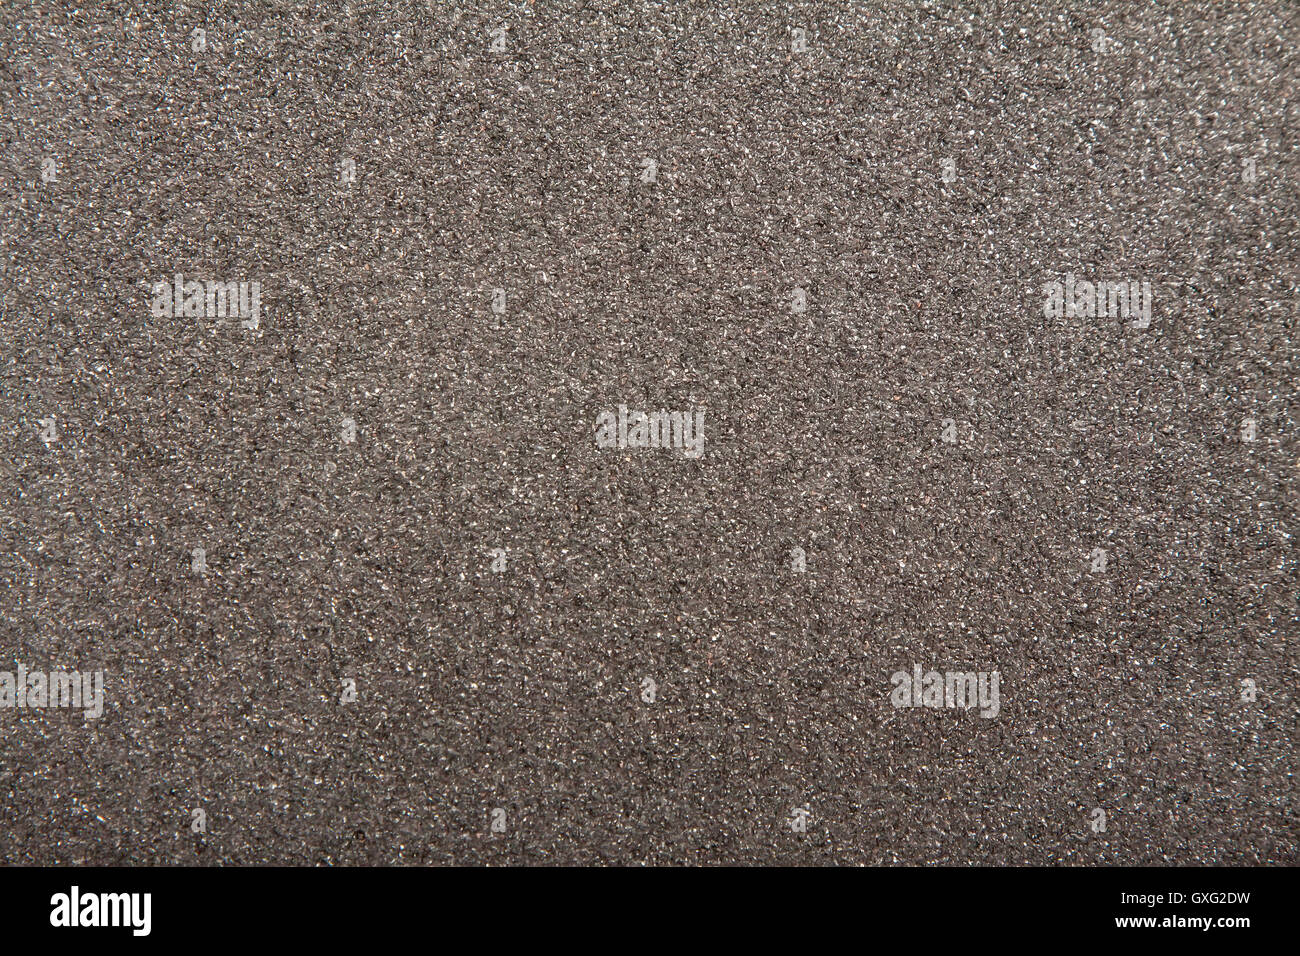 Emery paper - Stock Image